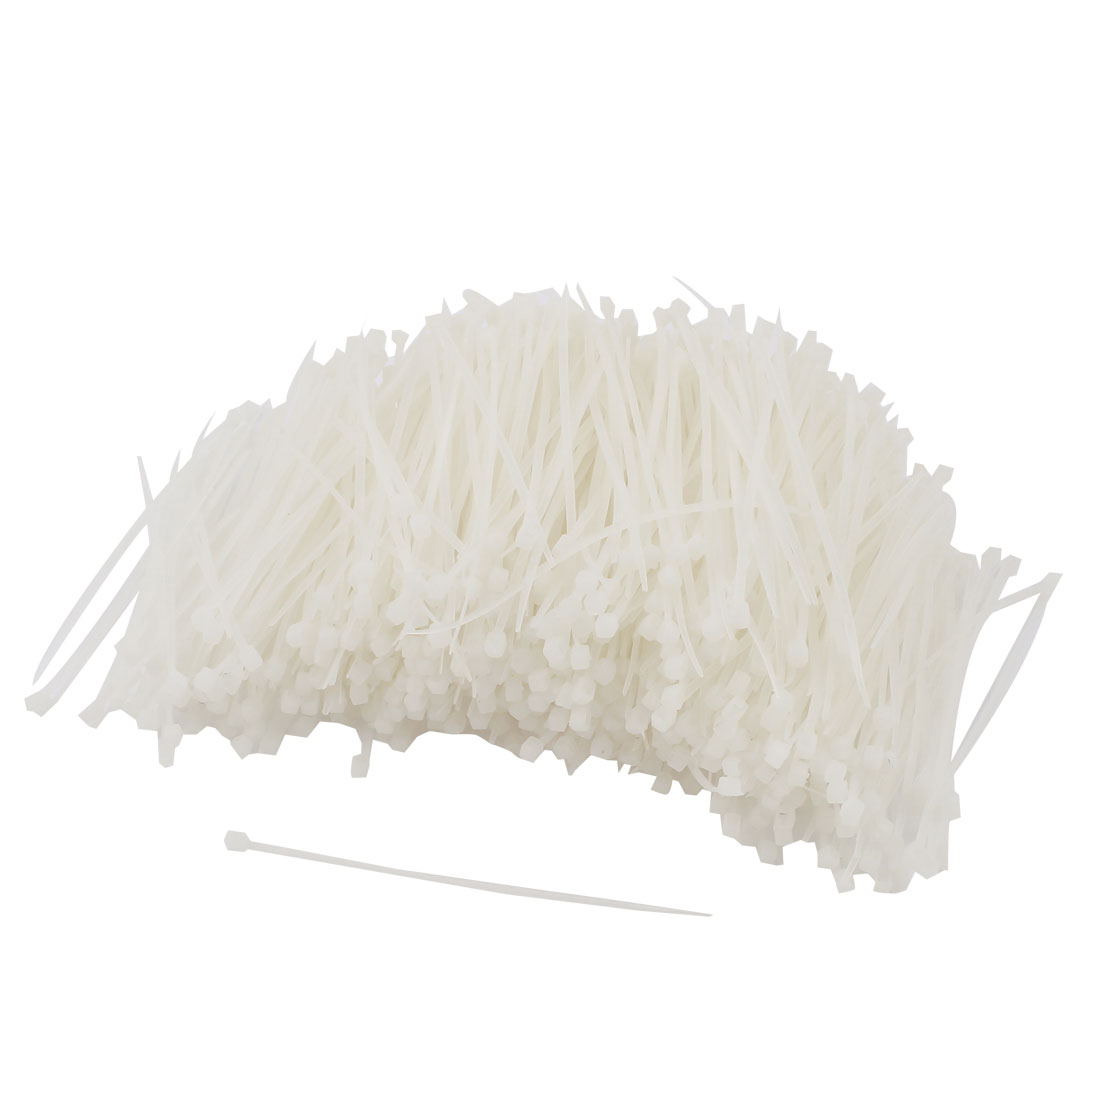 "1000pcs 4"" Length White Cord Wire Strap Nylon Cable Tie"